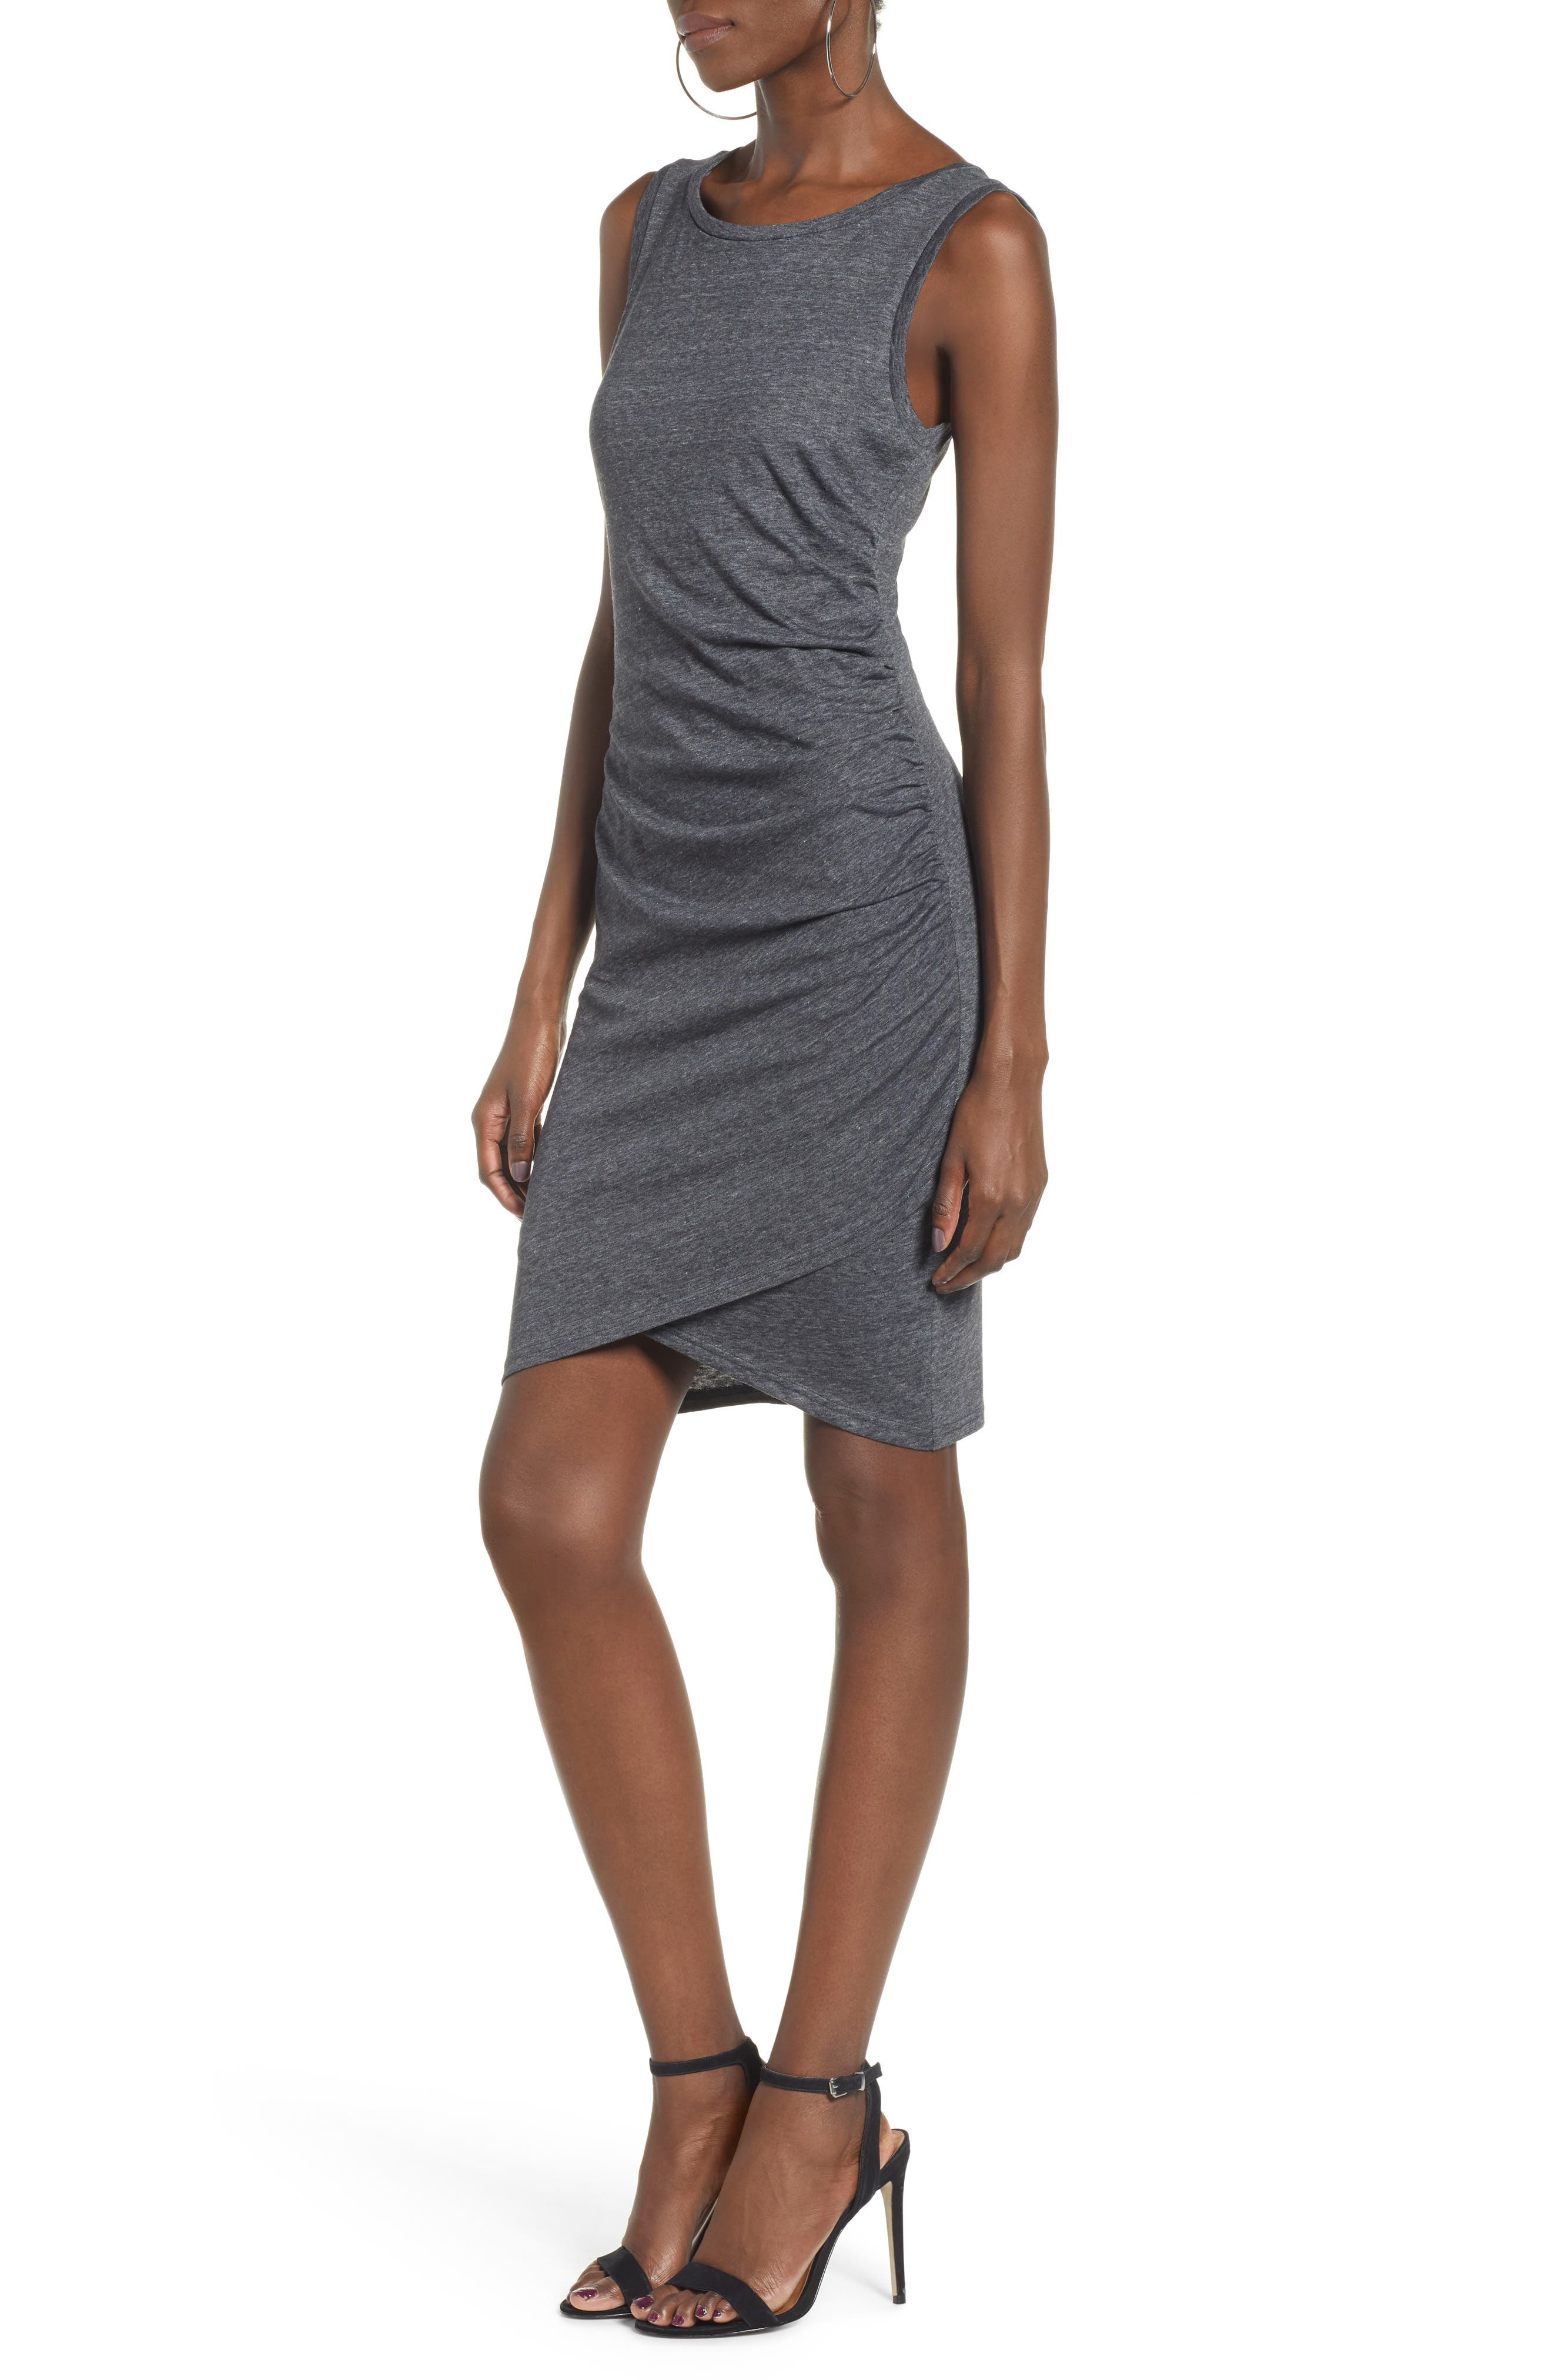 Ruched Body-Con Tank Dress,                             Alternate thumbnail 3, color,                             GREY MEDIUM CHARCOAL HEATHER